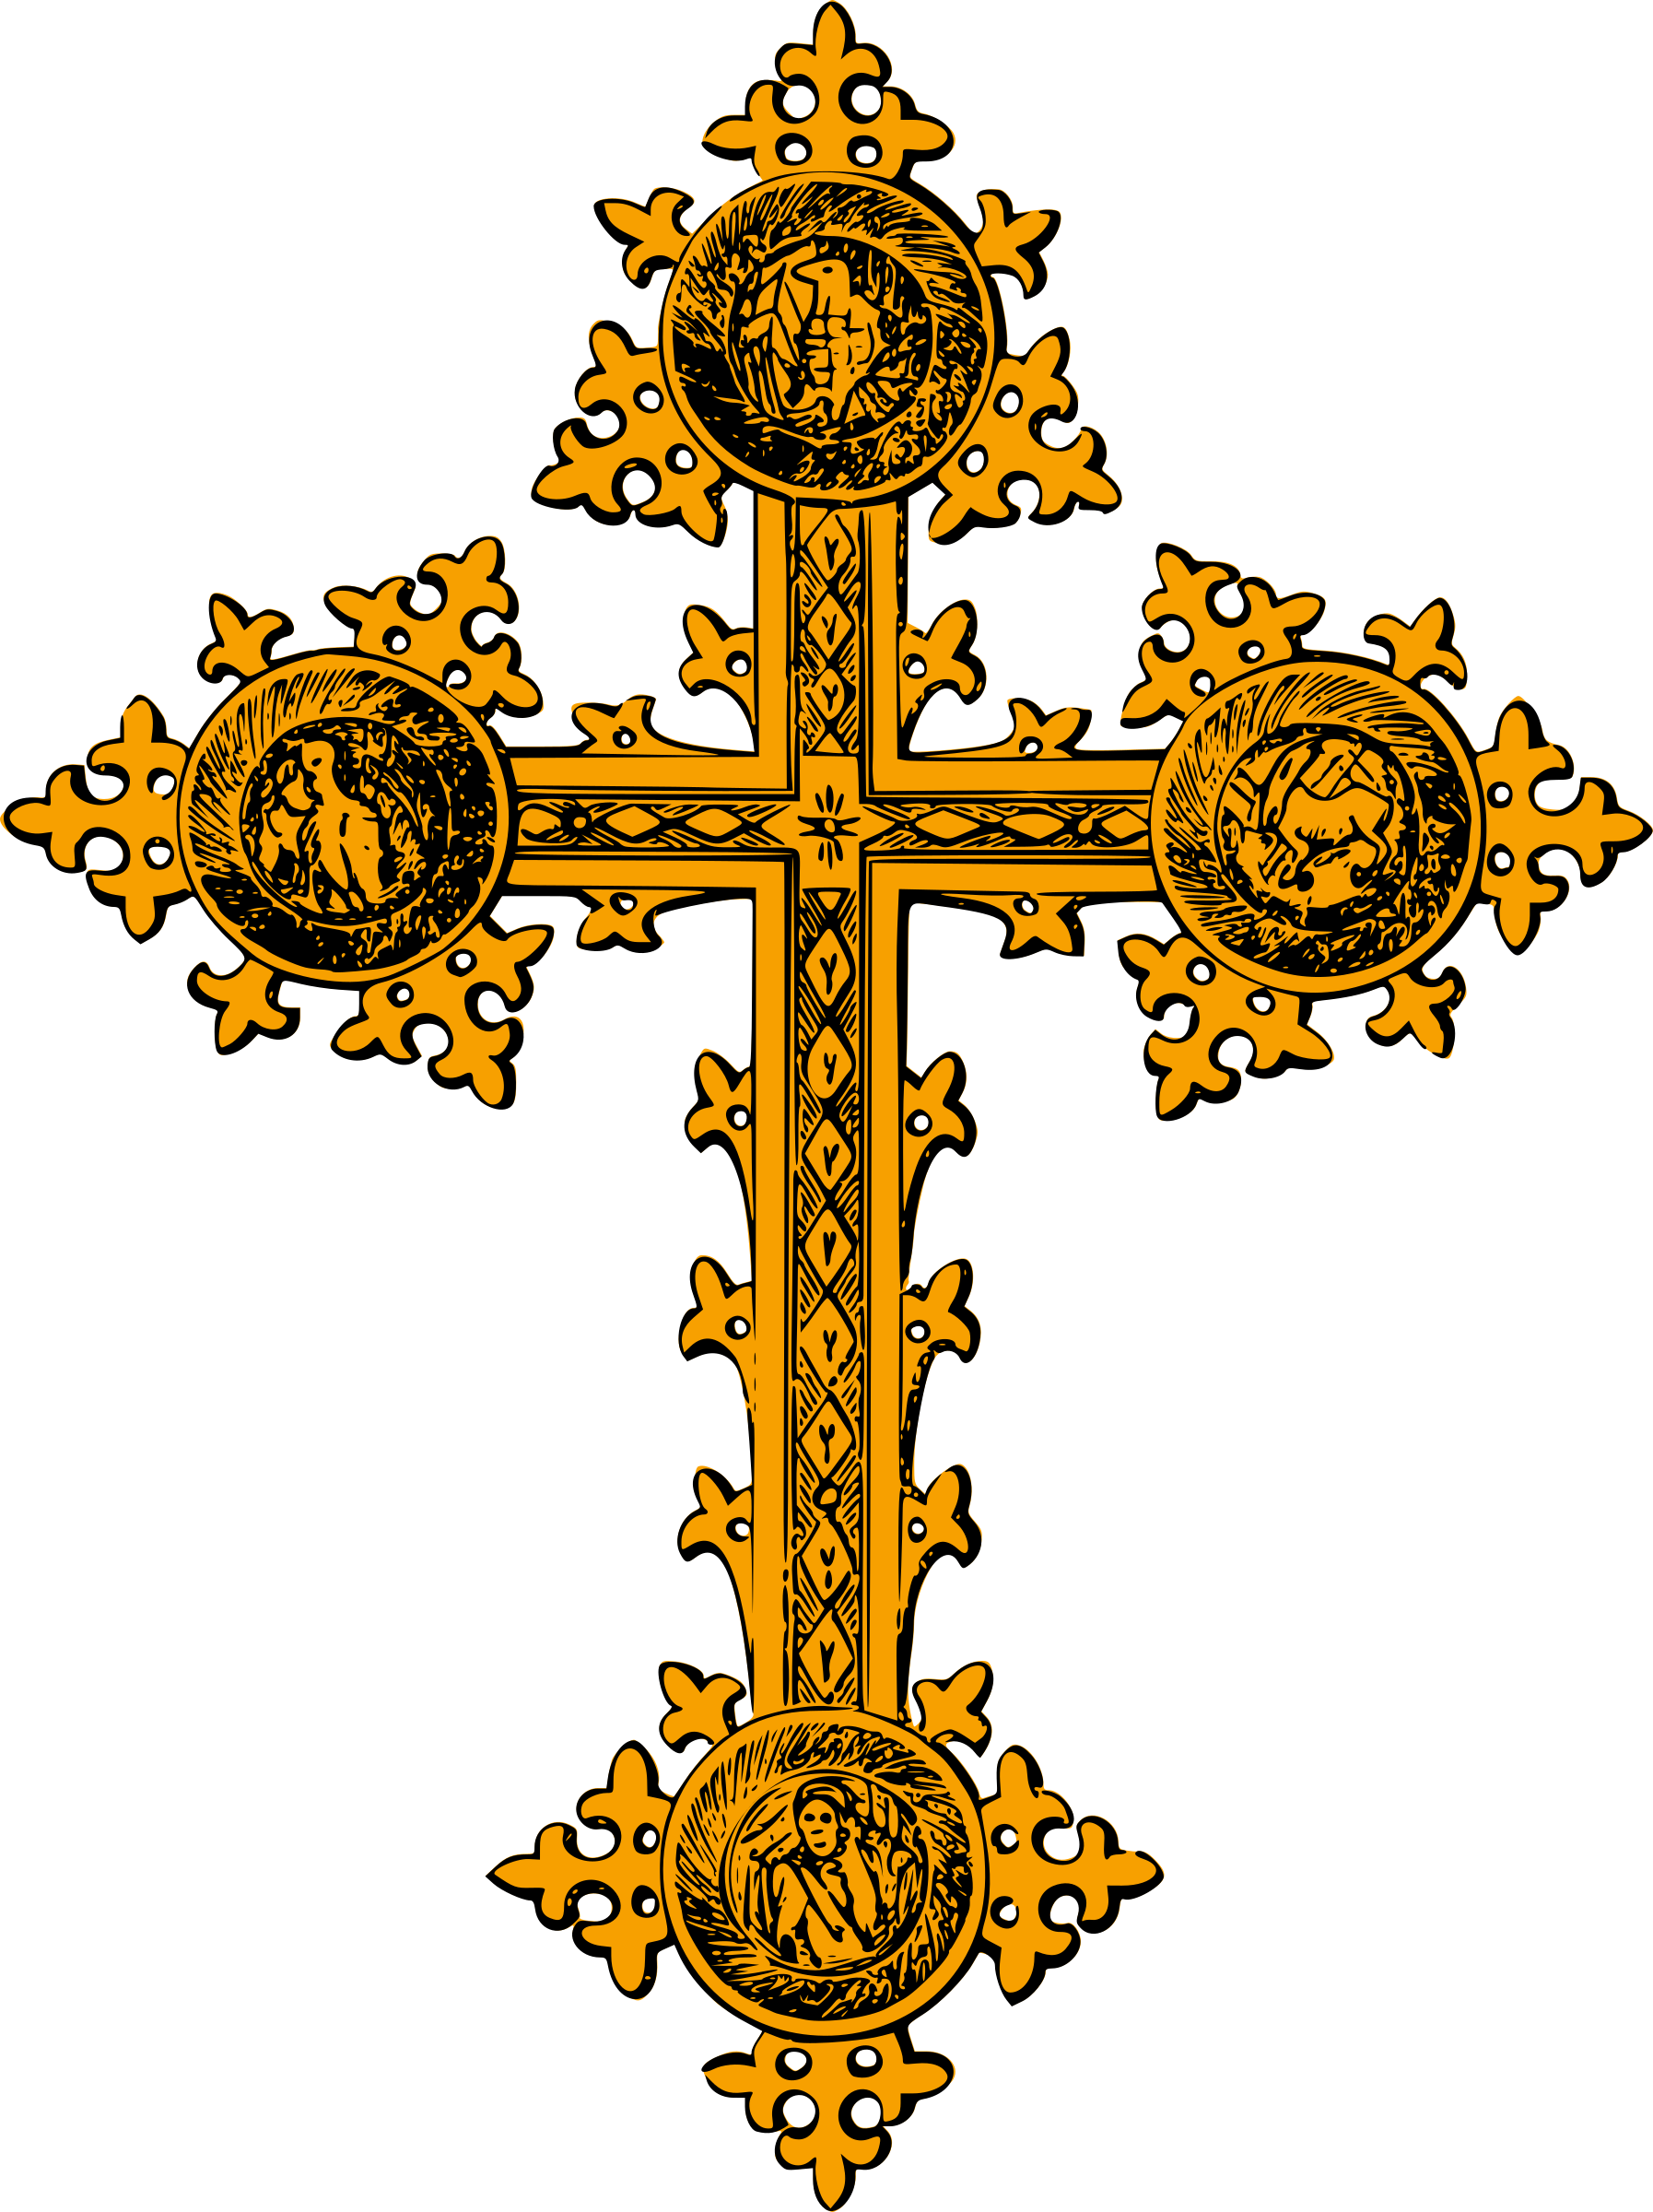 Russian orthodox cross clipart clip freeuse Clipart - Freestanding cross (gold with detail) clip freeuse